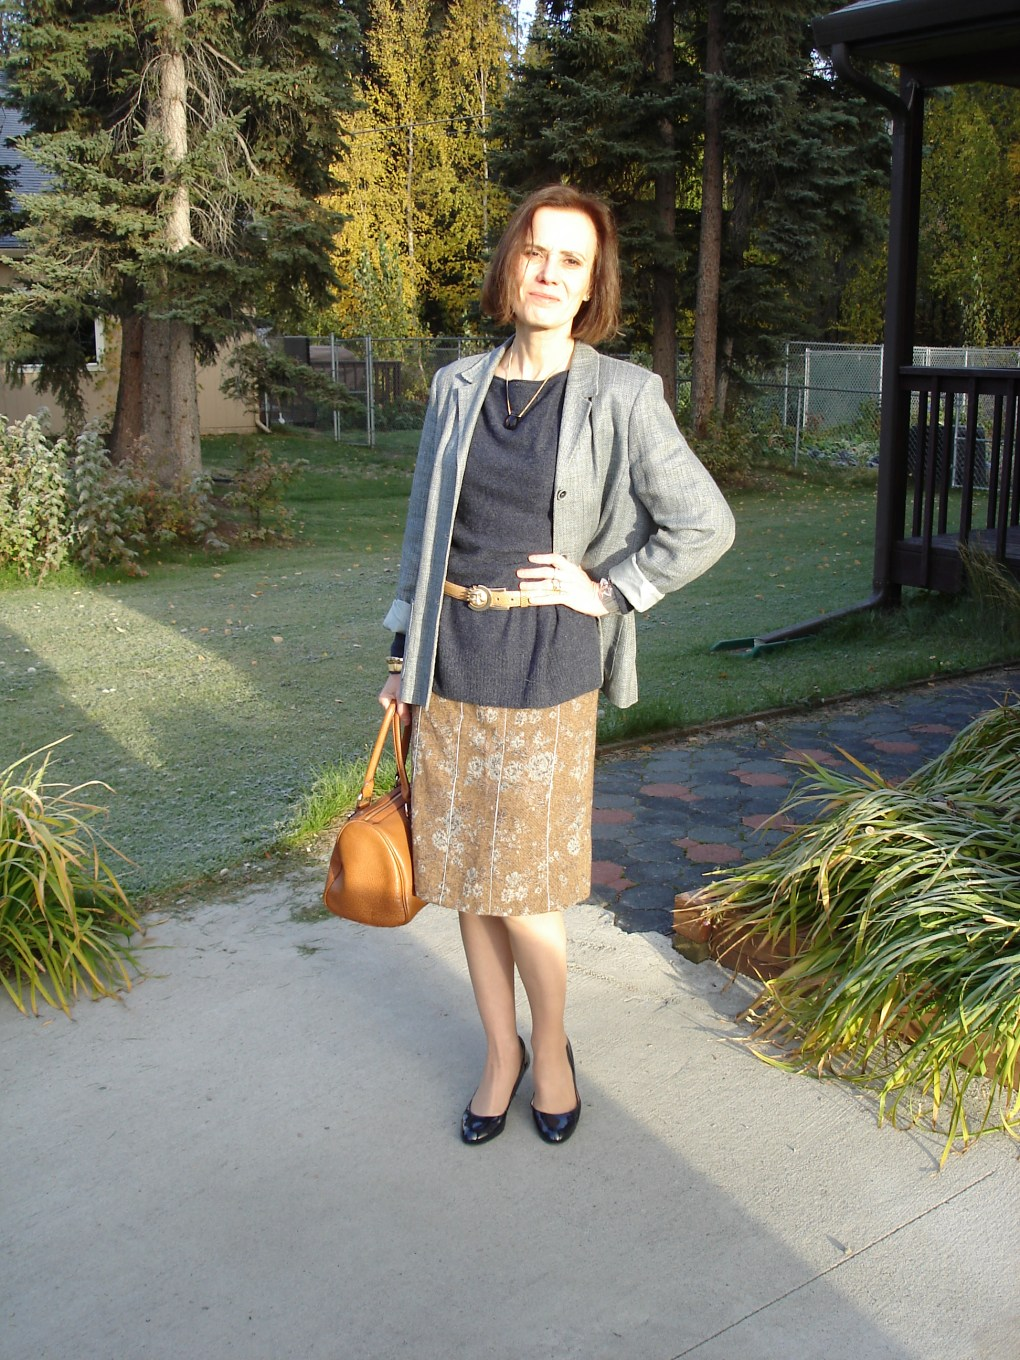 over 50 old woman in tweed skirt with blazer as unmatched suit